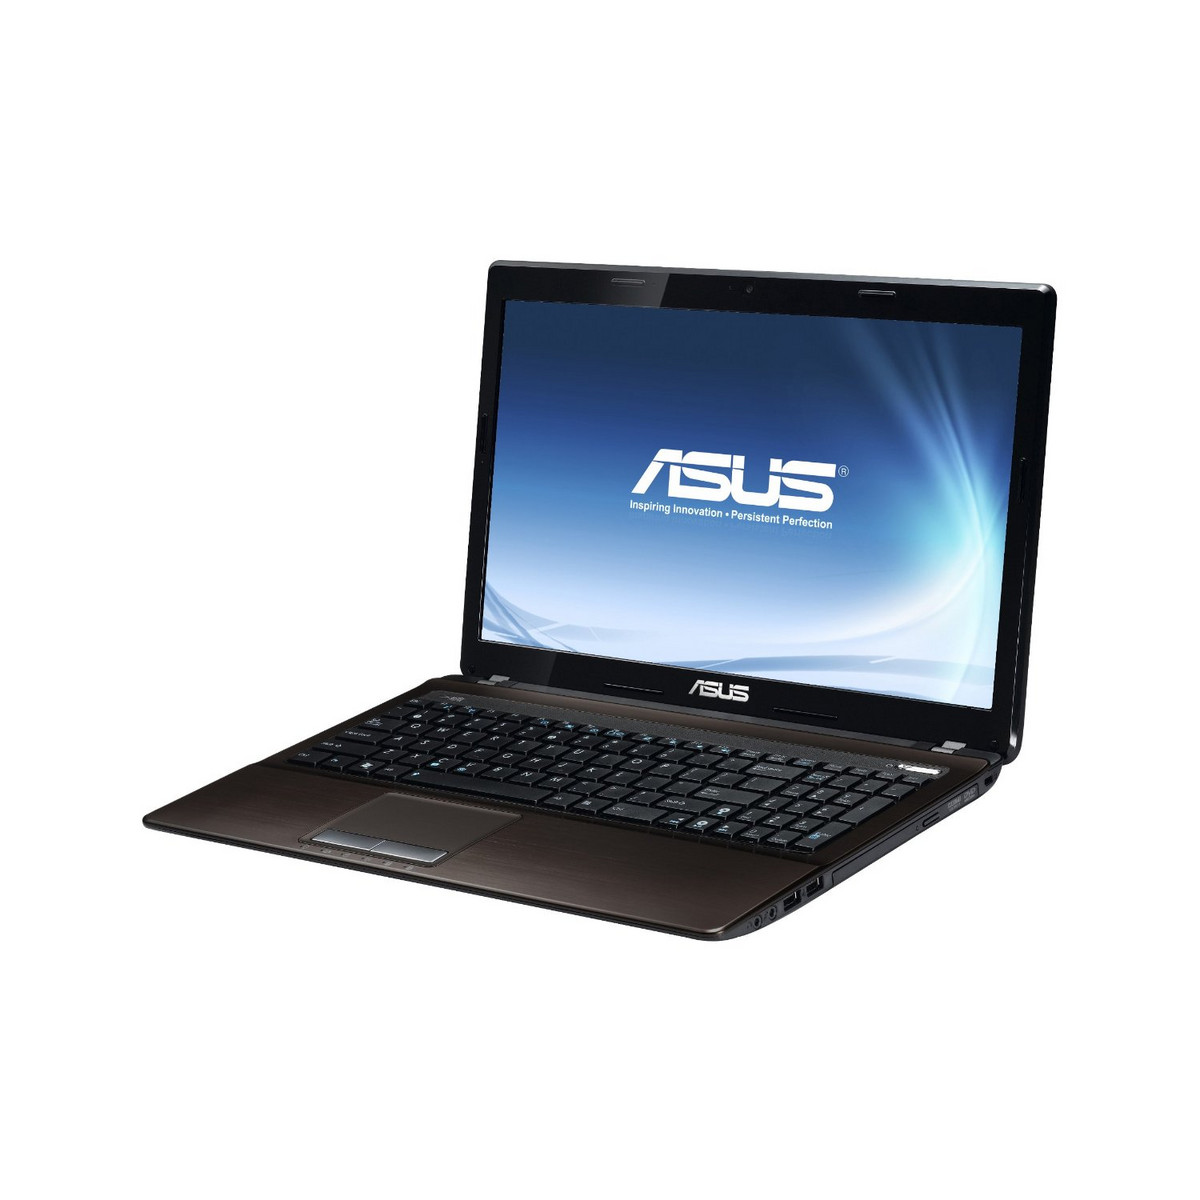 ASUS P53E INTEL TURBO BOOST MONITOR DRIVERS WINDOWS 7